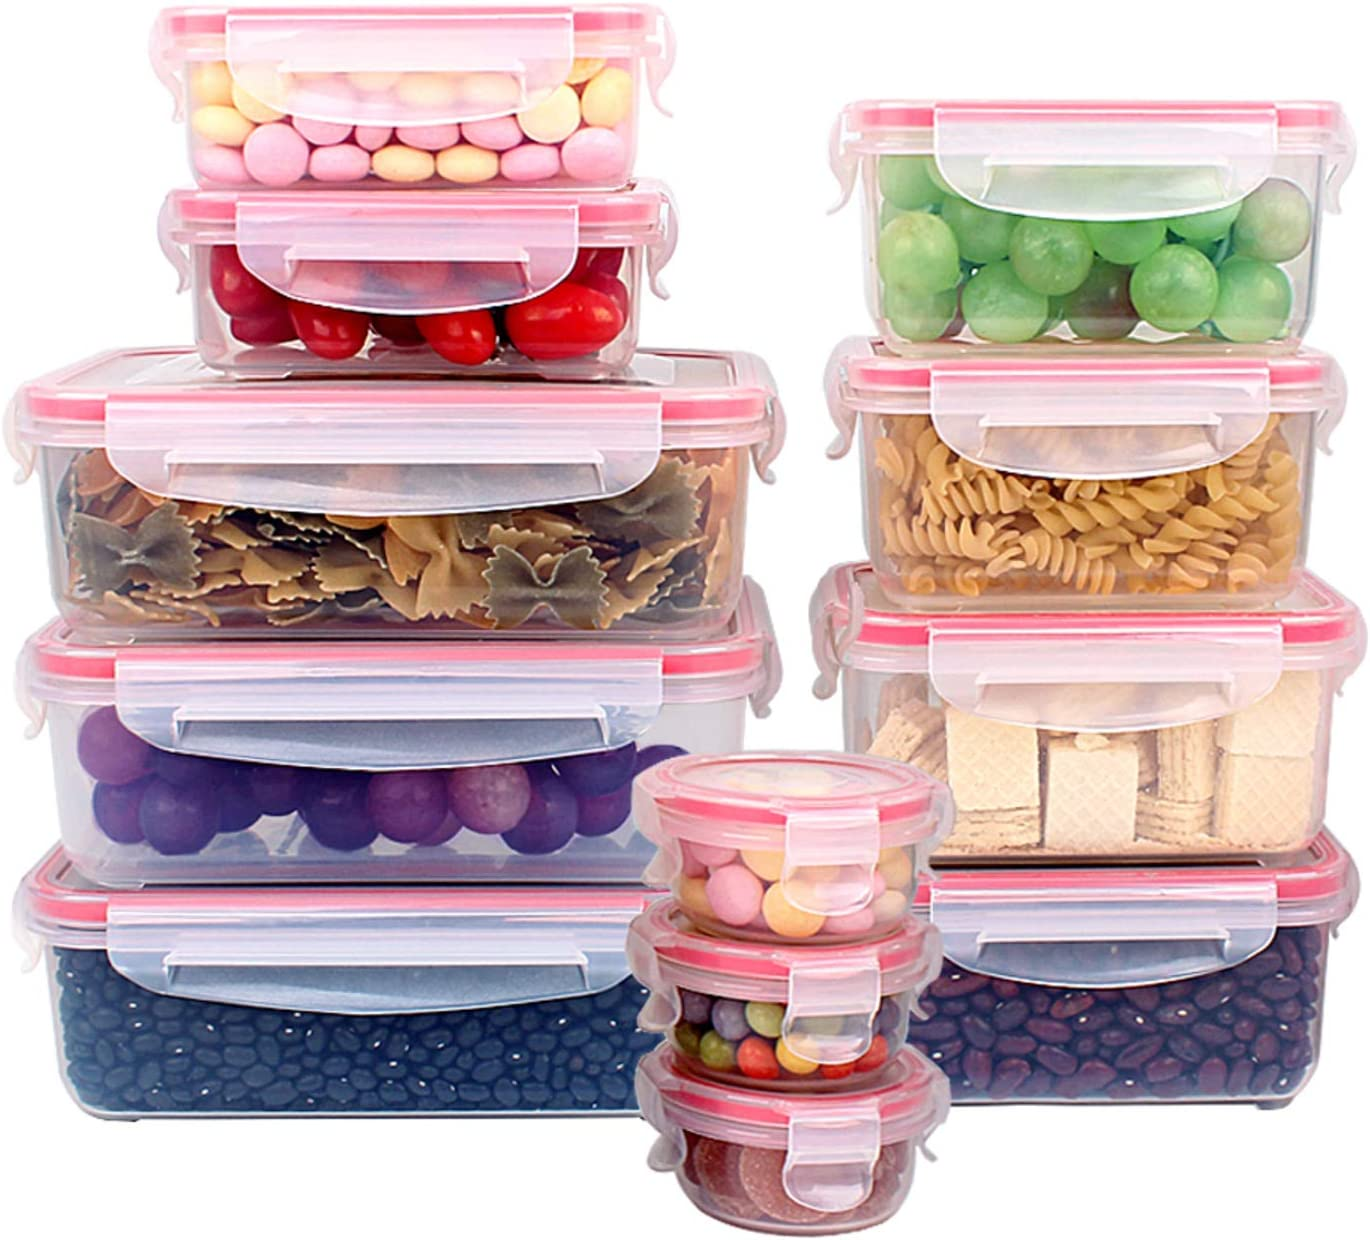 Xeonic 12 Pack Food Containers With Lids - Food Storage with Lids - Plastic Containers with Lids - Food Storage - Food Box Lunch Box Meal prep Containers